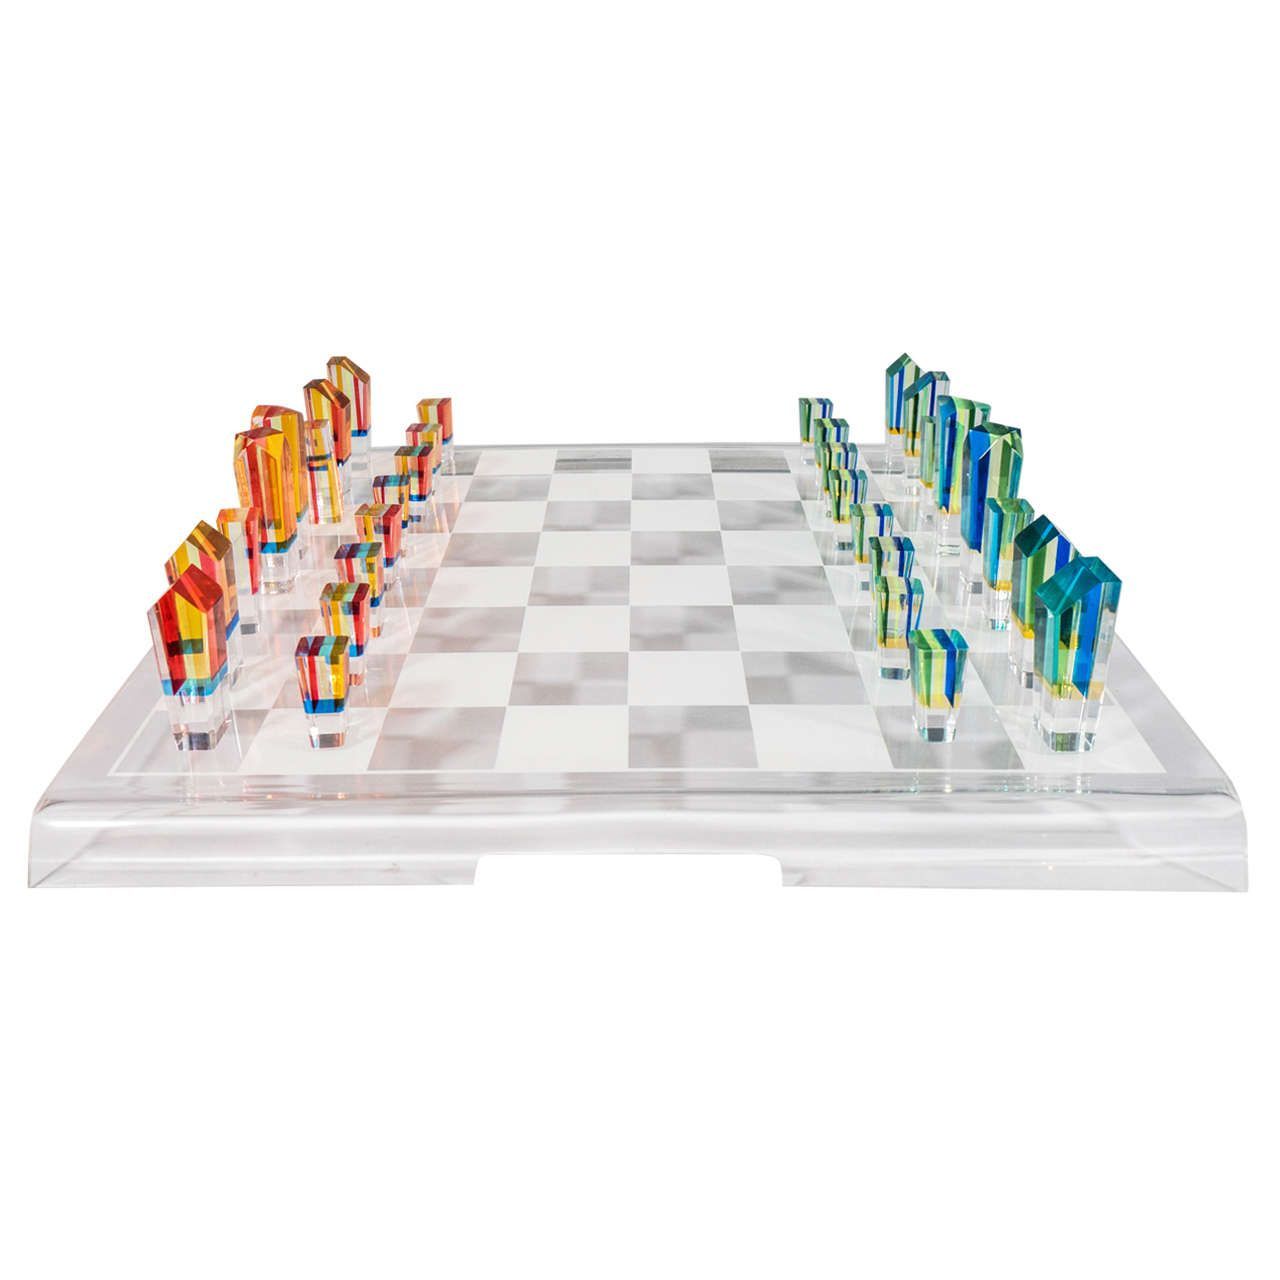 41+ Chess board games for sale collection